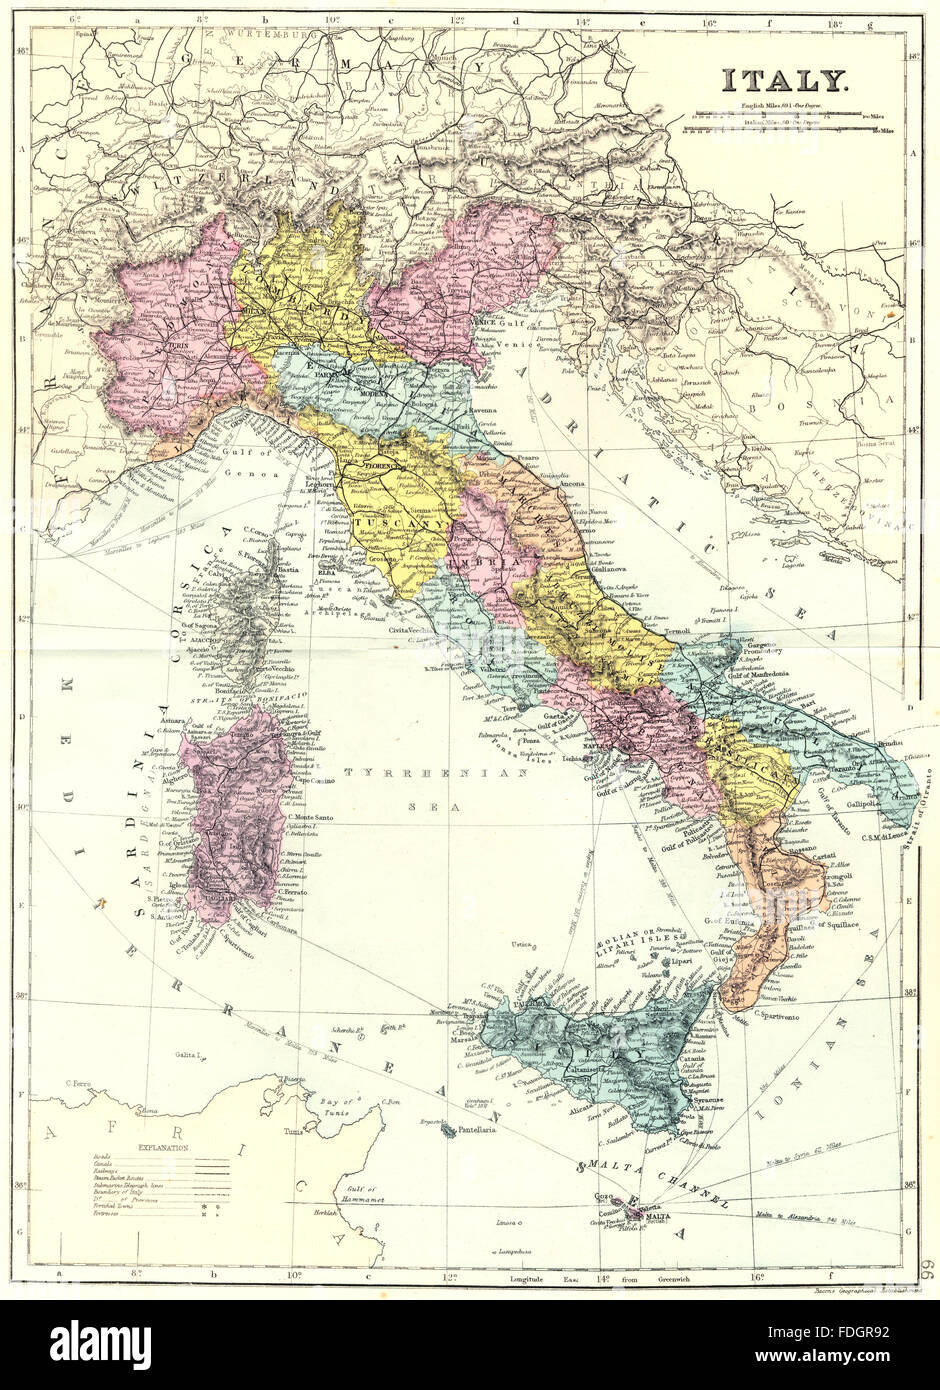 ITALY: Italy. Bacon, 1895 antique map - Stock Image